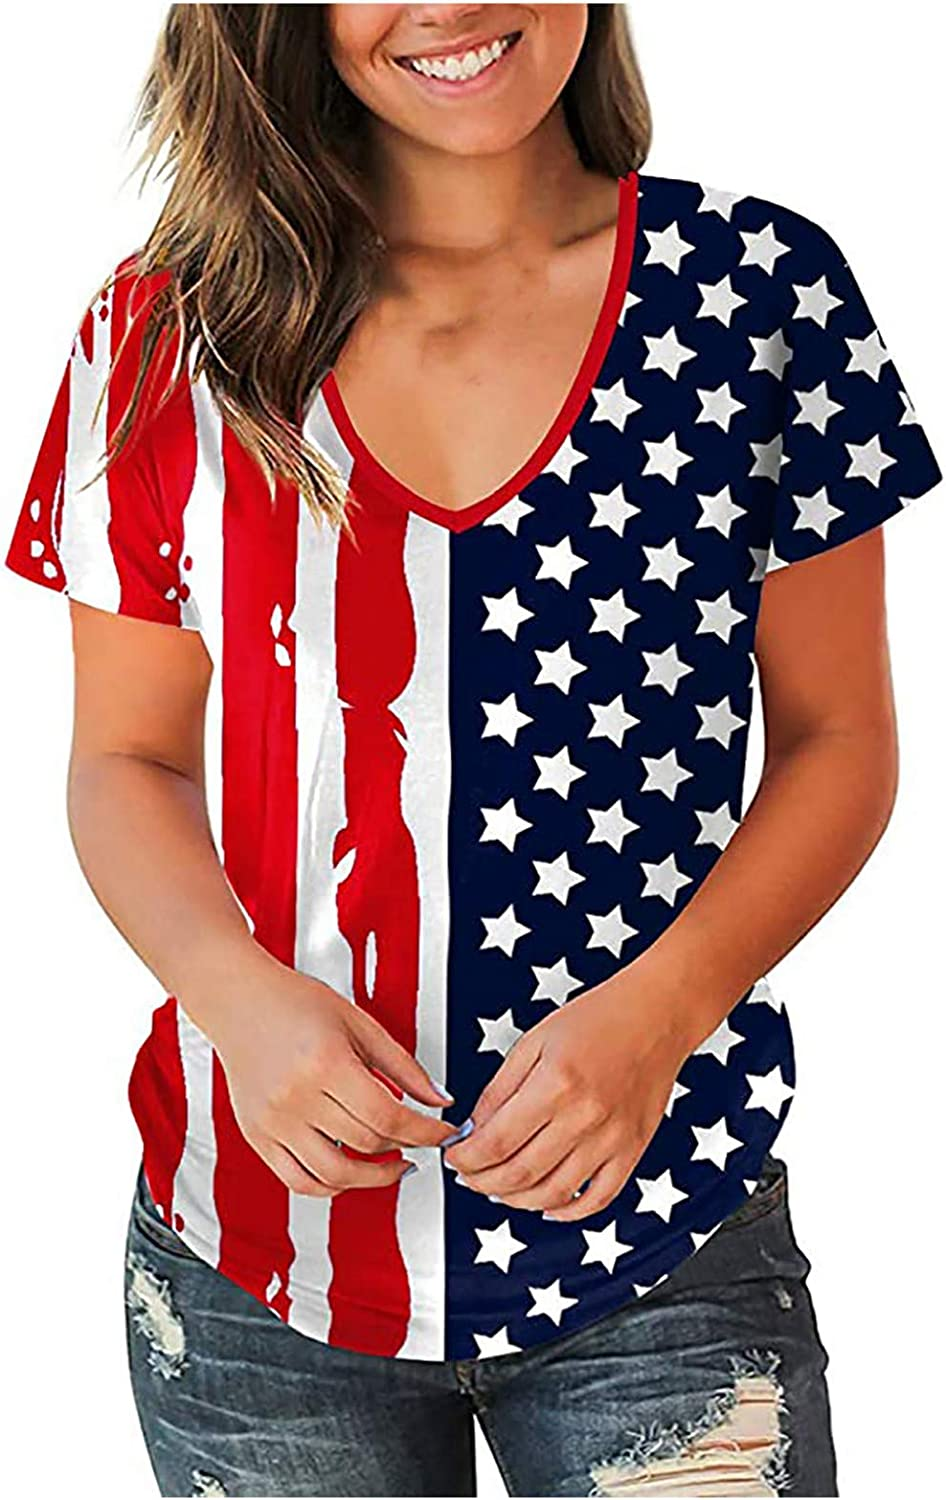 4th of July Shirts for Women Funny Striped American Flag Print Short Sleeve V Neck Tee Independence Day Patriotic Tops